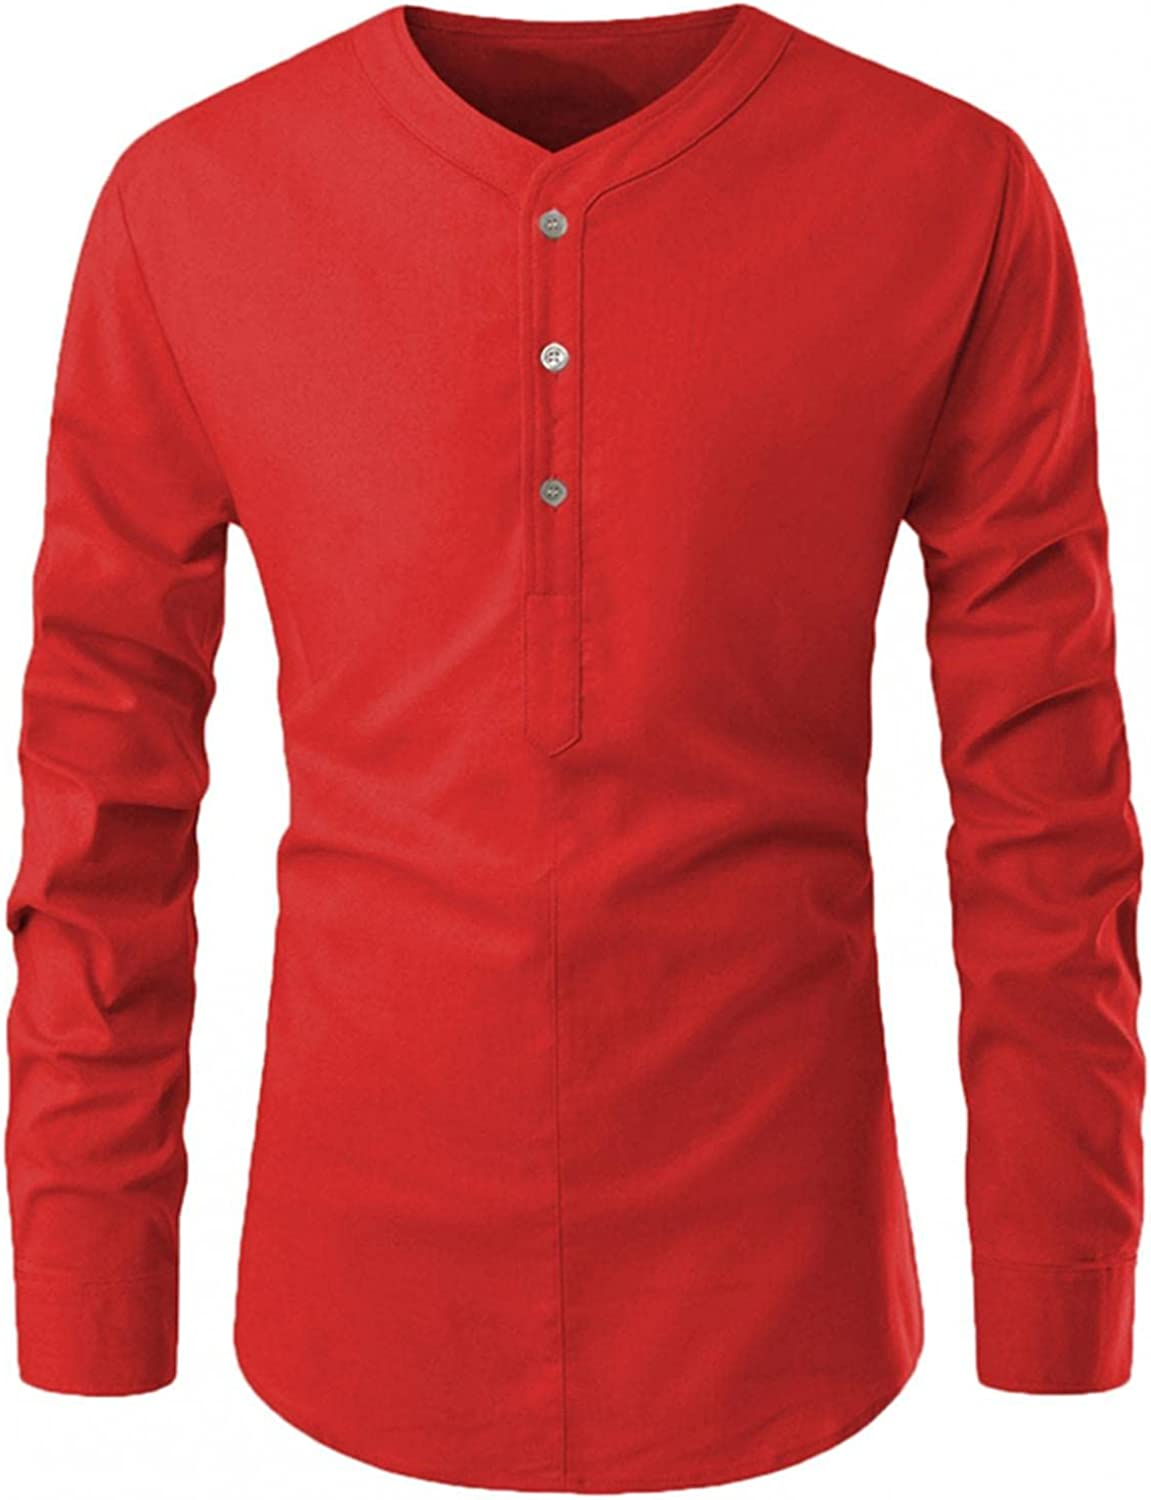 Henley Shirts for Men Long Sleeve Band Collar Button Down Tops Slim Fit Cotton Pullover Blouse Lightweight Hem Tshirt